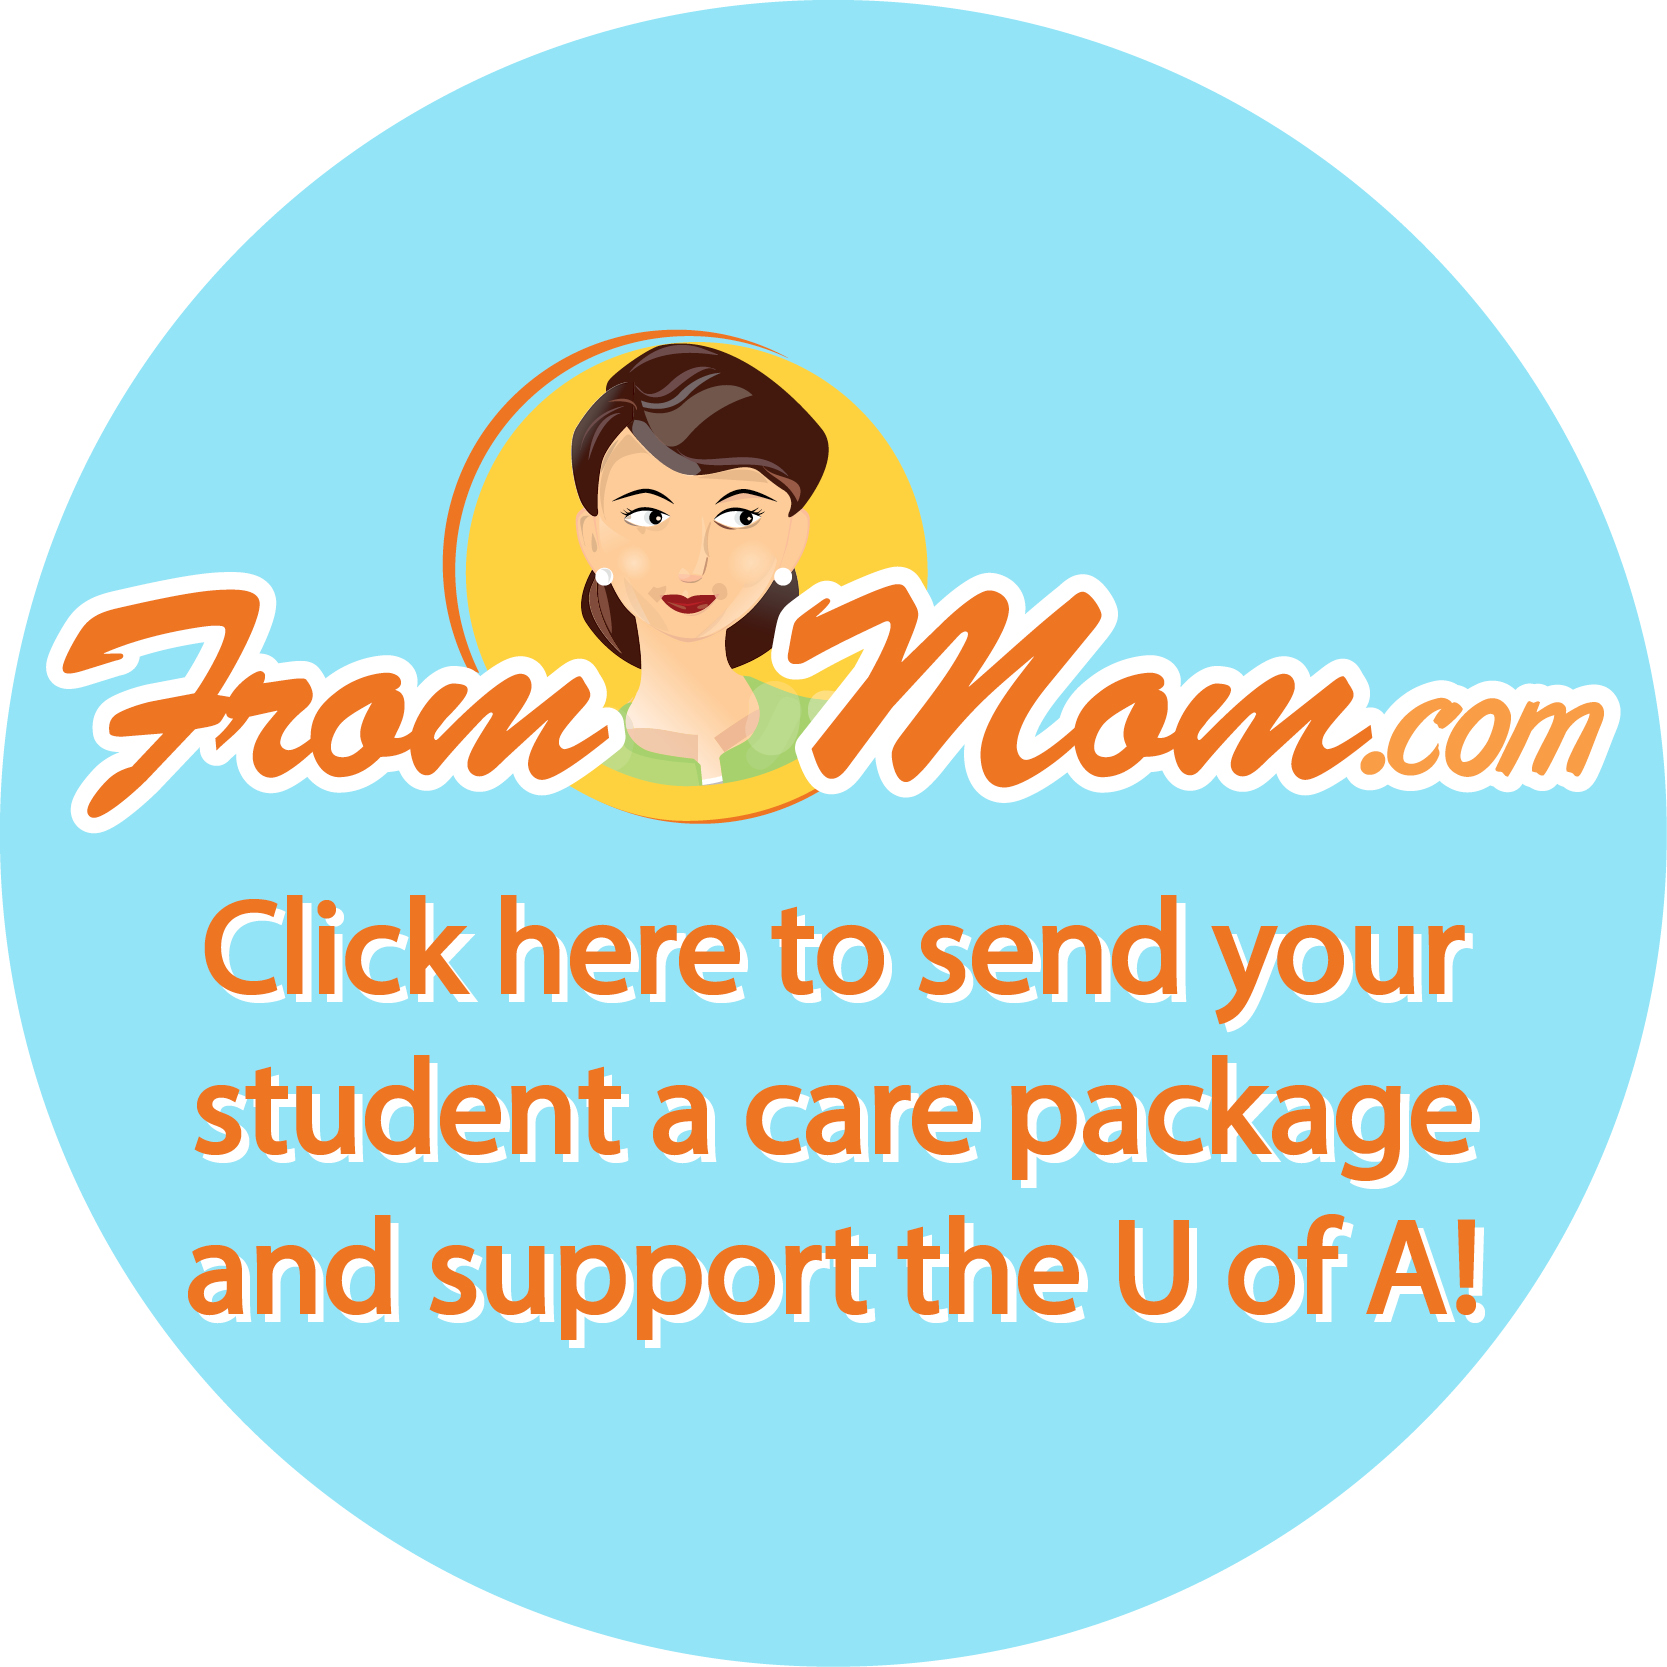 From-Mom.com Care Packages